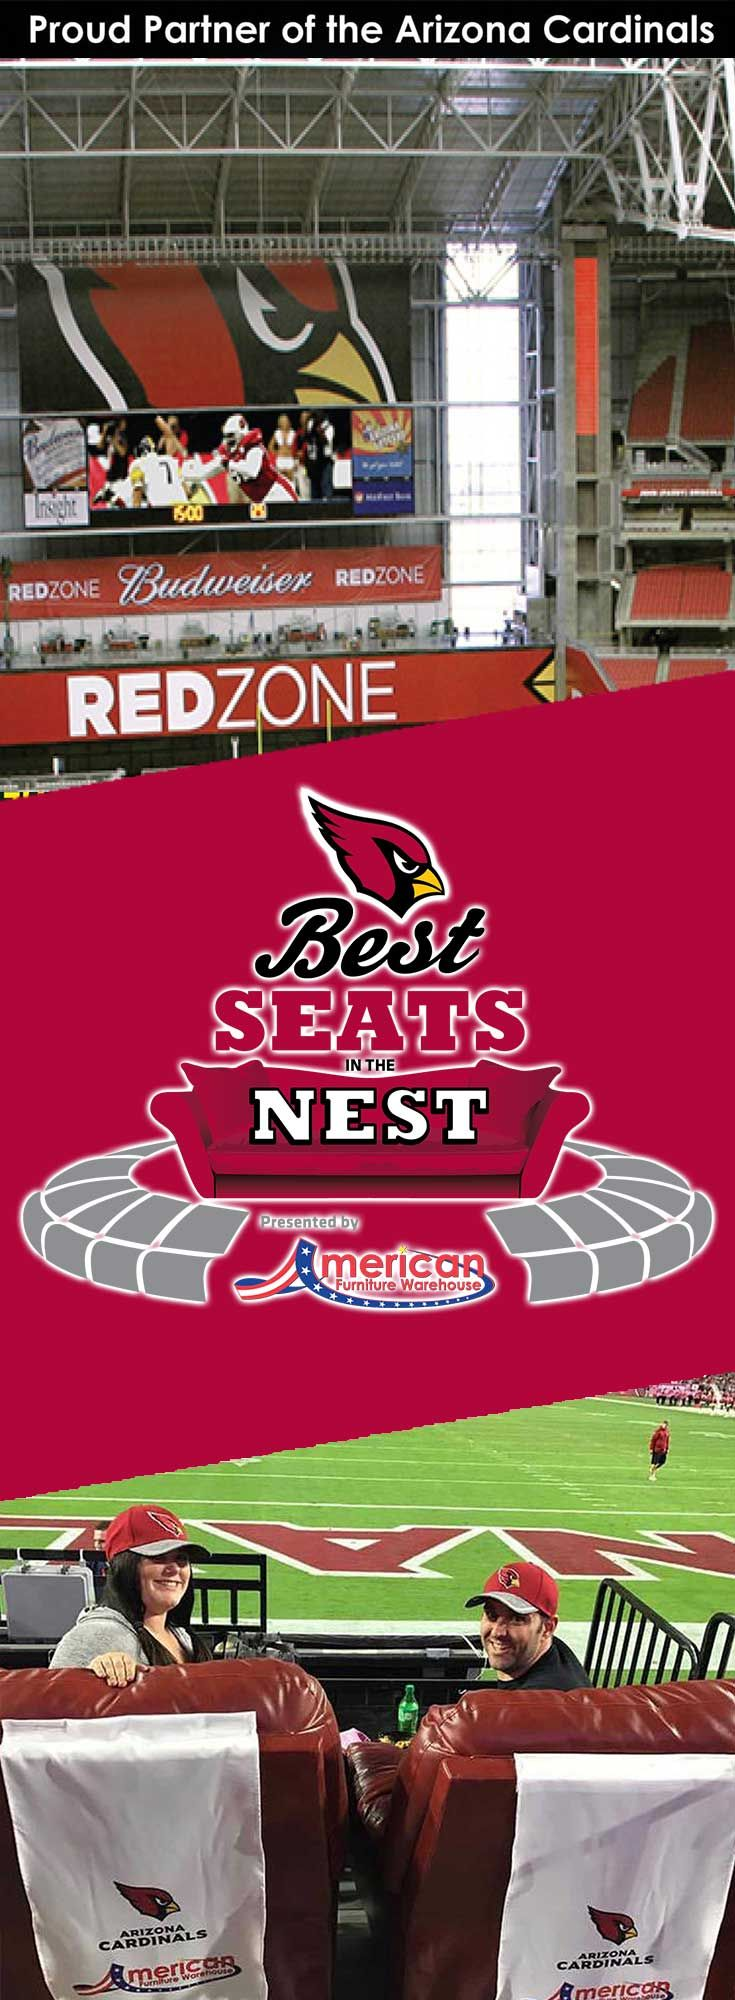 YOU COULD BE NEXT! Visit on of our two AZ stores to enter our Arizona Cardinals Best Seats in the Nest sweepstakes for your chance to win tickets to a home game this season and much, much more! For official rules and more information, please visit www.afw.com/cardinals.